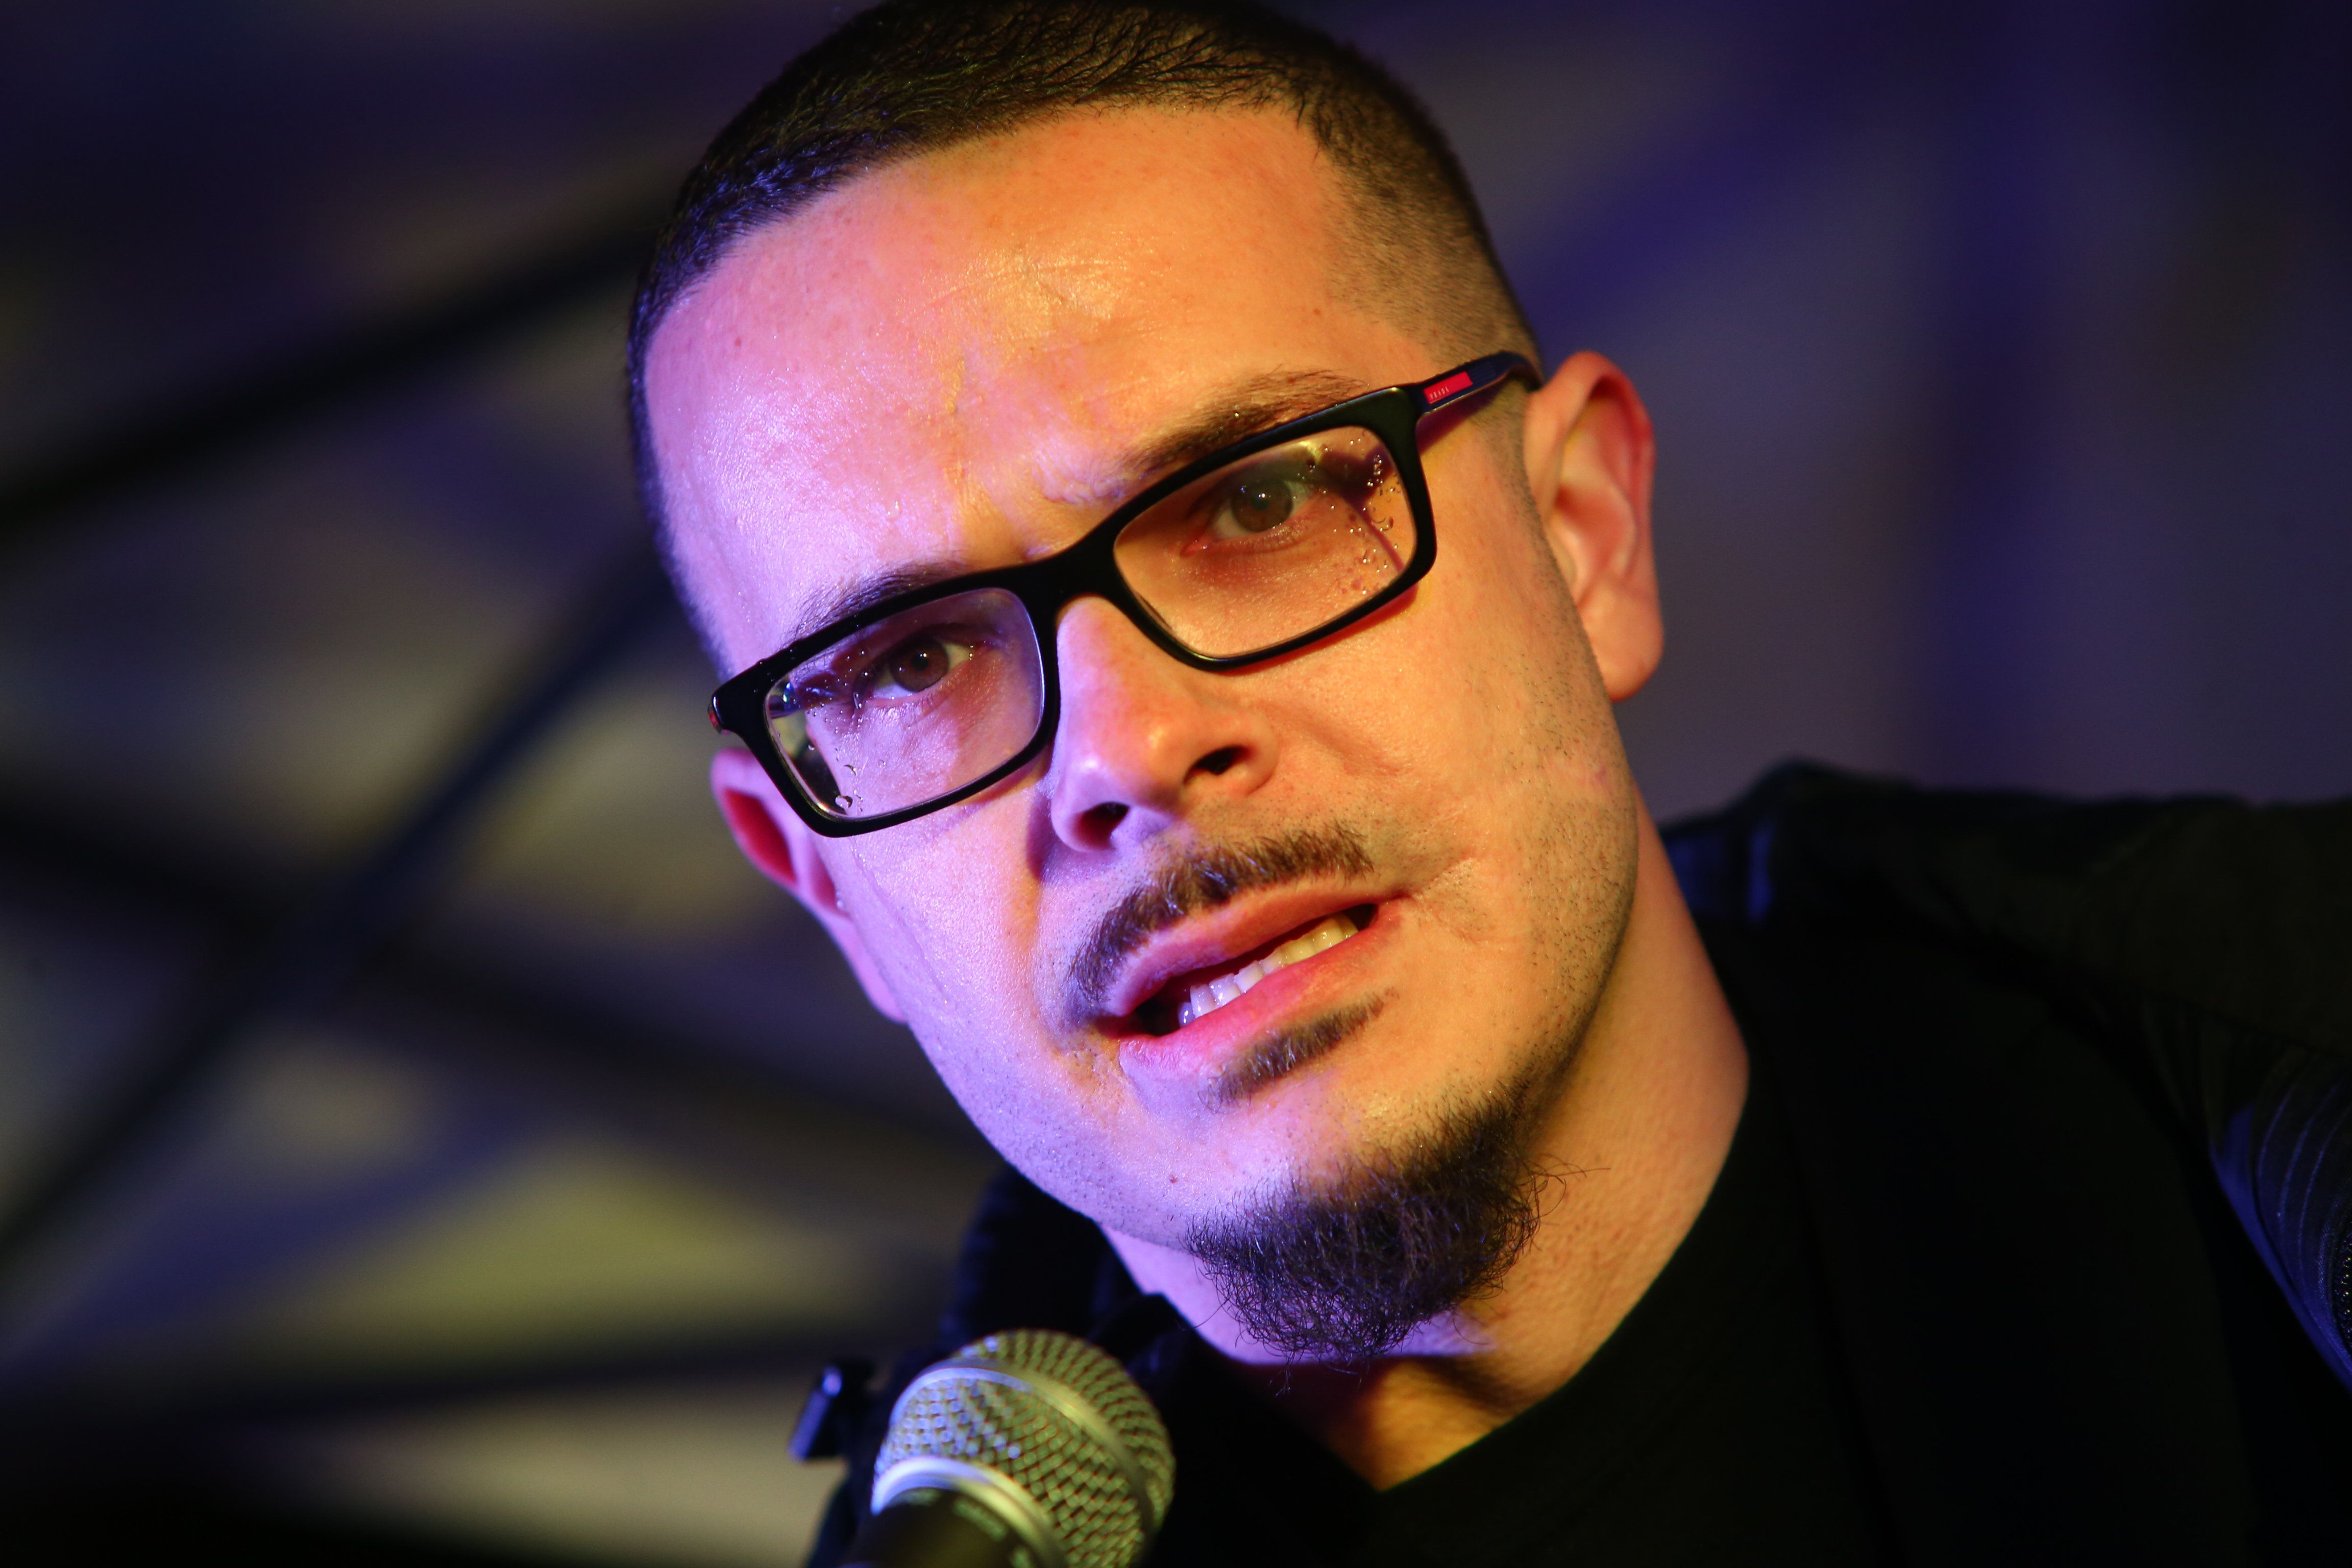 Shaun King speaks at a rally in Seattle, Washington, March 8.